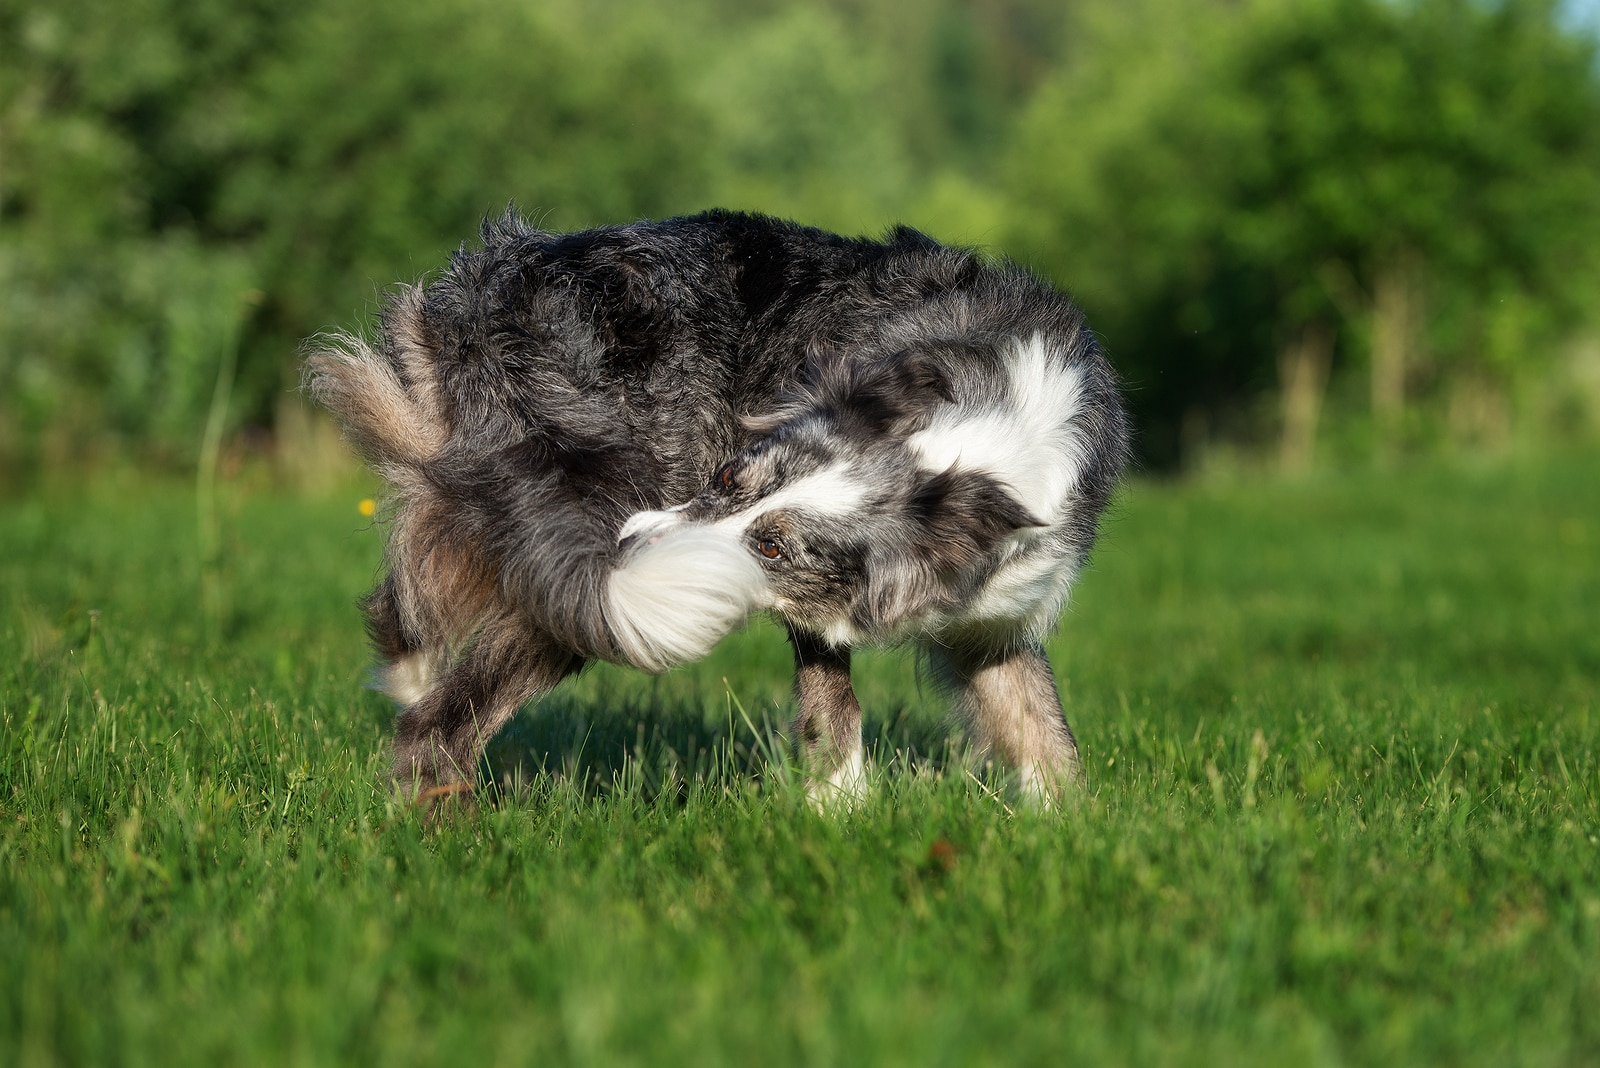 Gray and white long-haired dog catches his tail running in a circle.